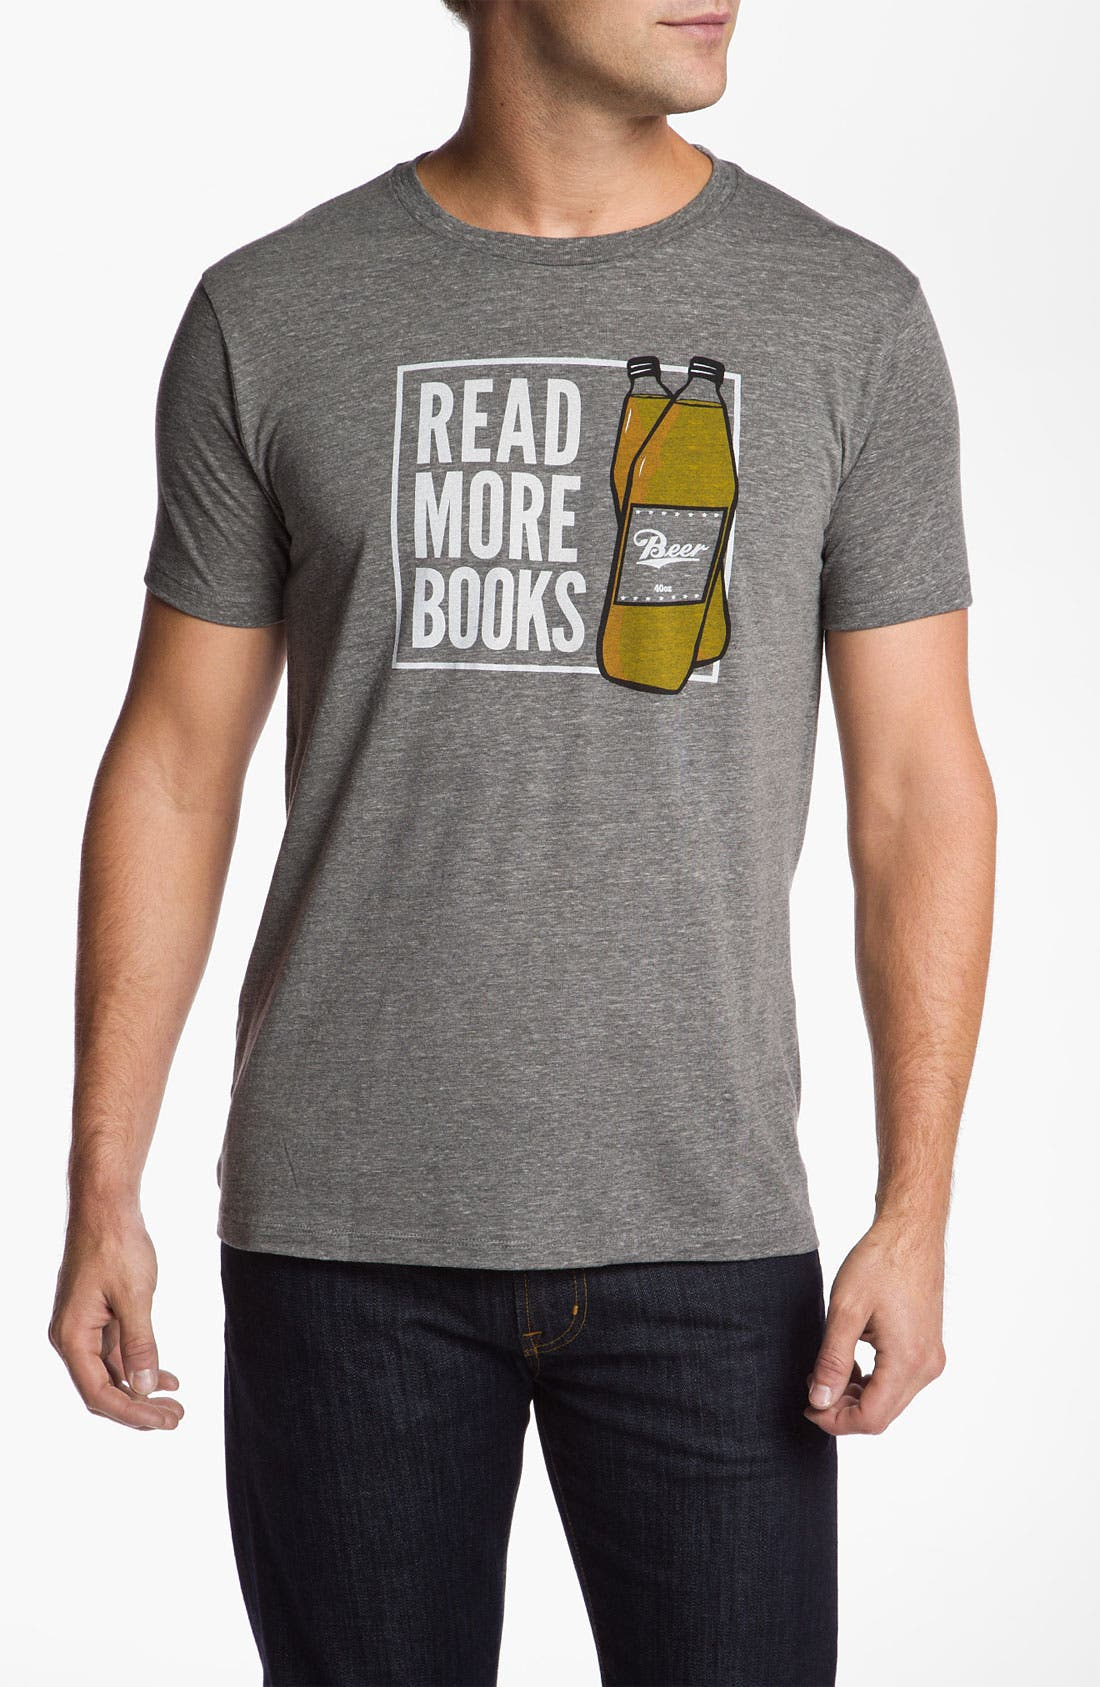 Alternate Image 1 Selected - Headline Shirts 'Read More Books' Graphic T-Shirt